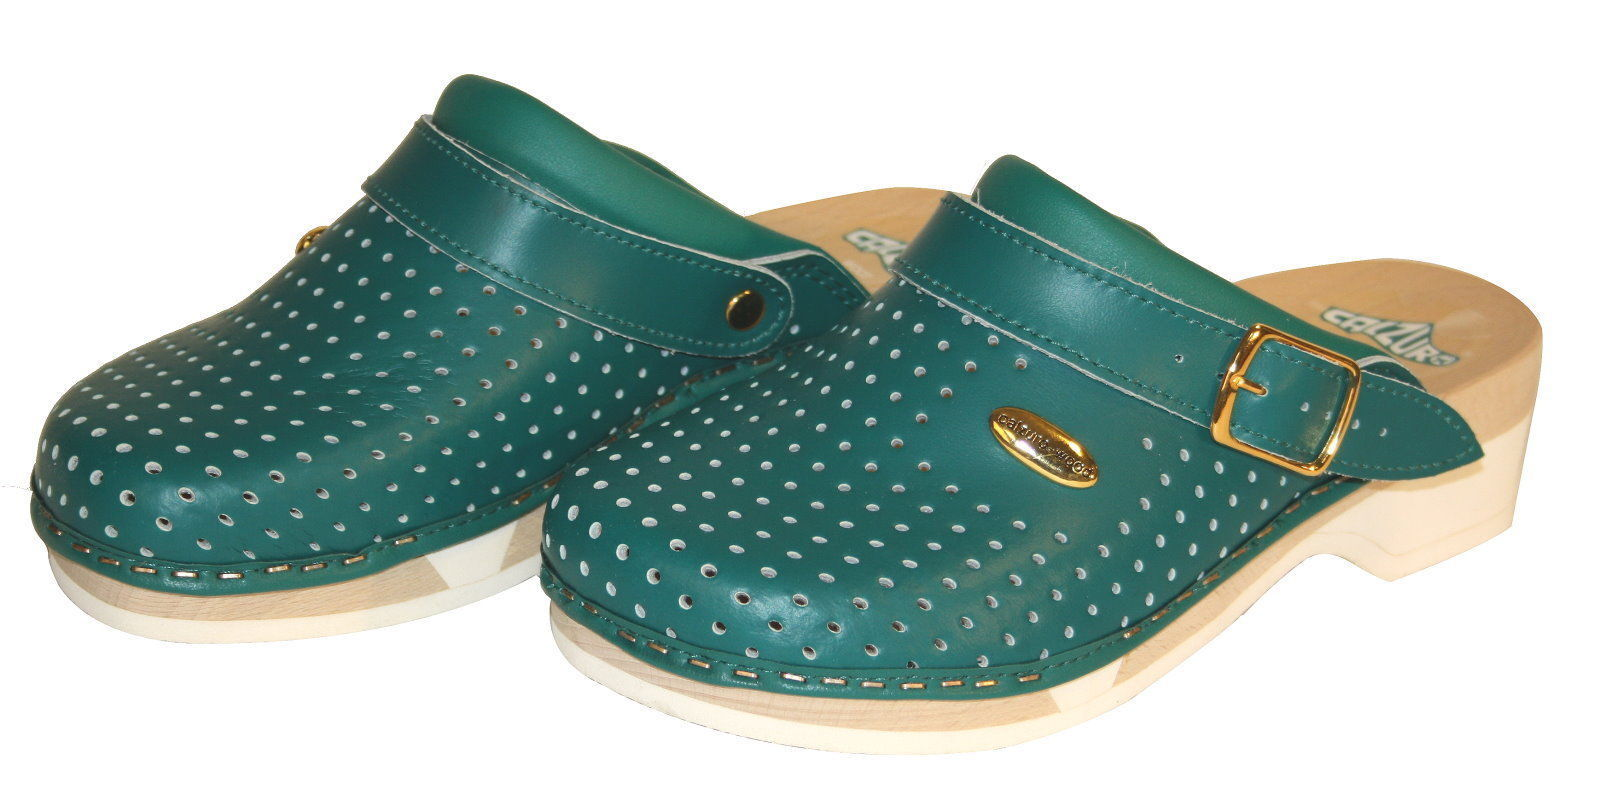 Calzuro Leather Wood Clogs Work Shoes Hospital Practice Shoe Work Boots